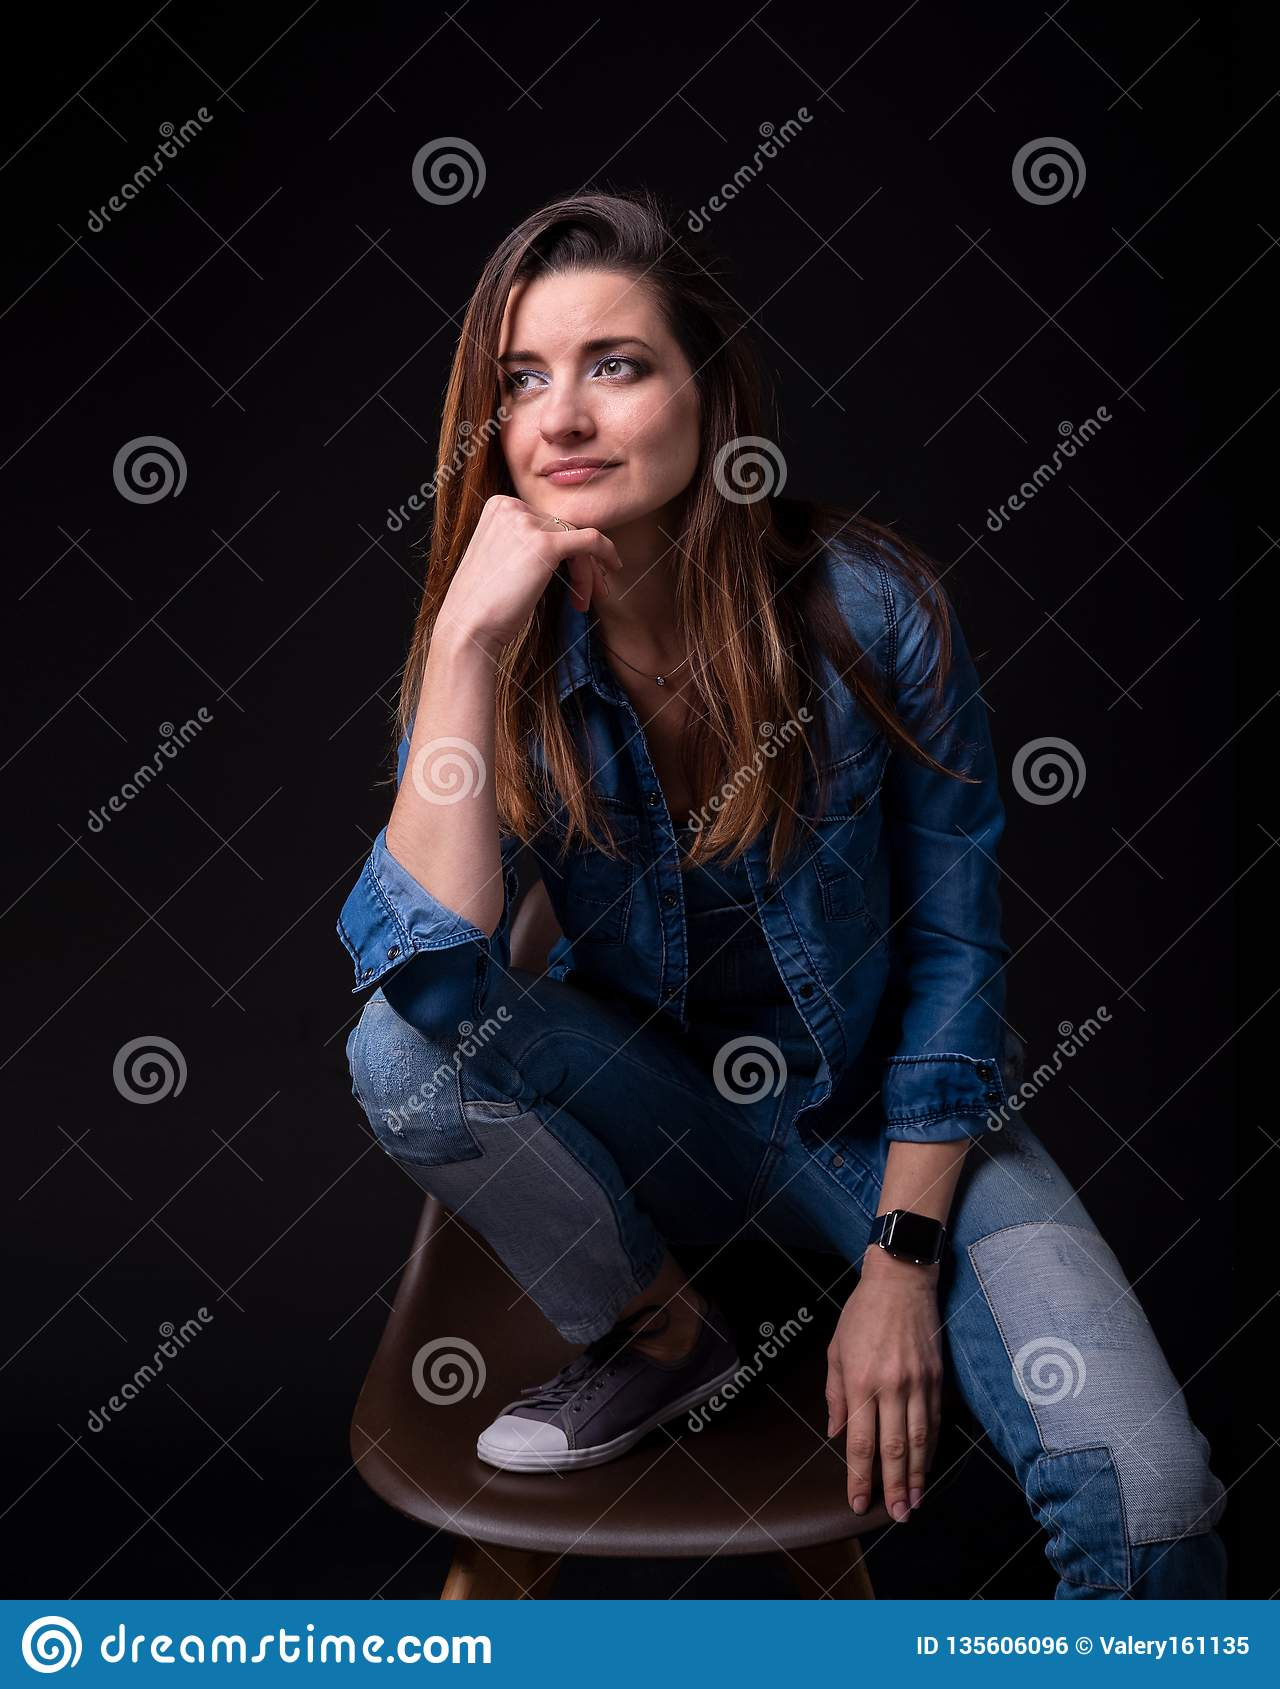 Brunette girl in blue denim jacket and pants